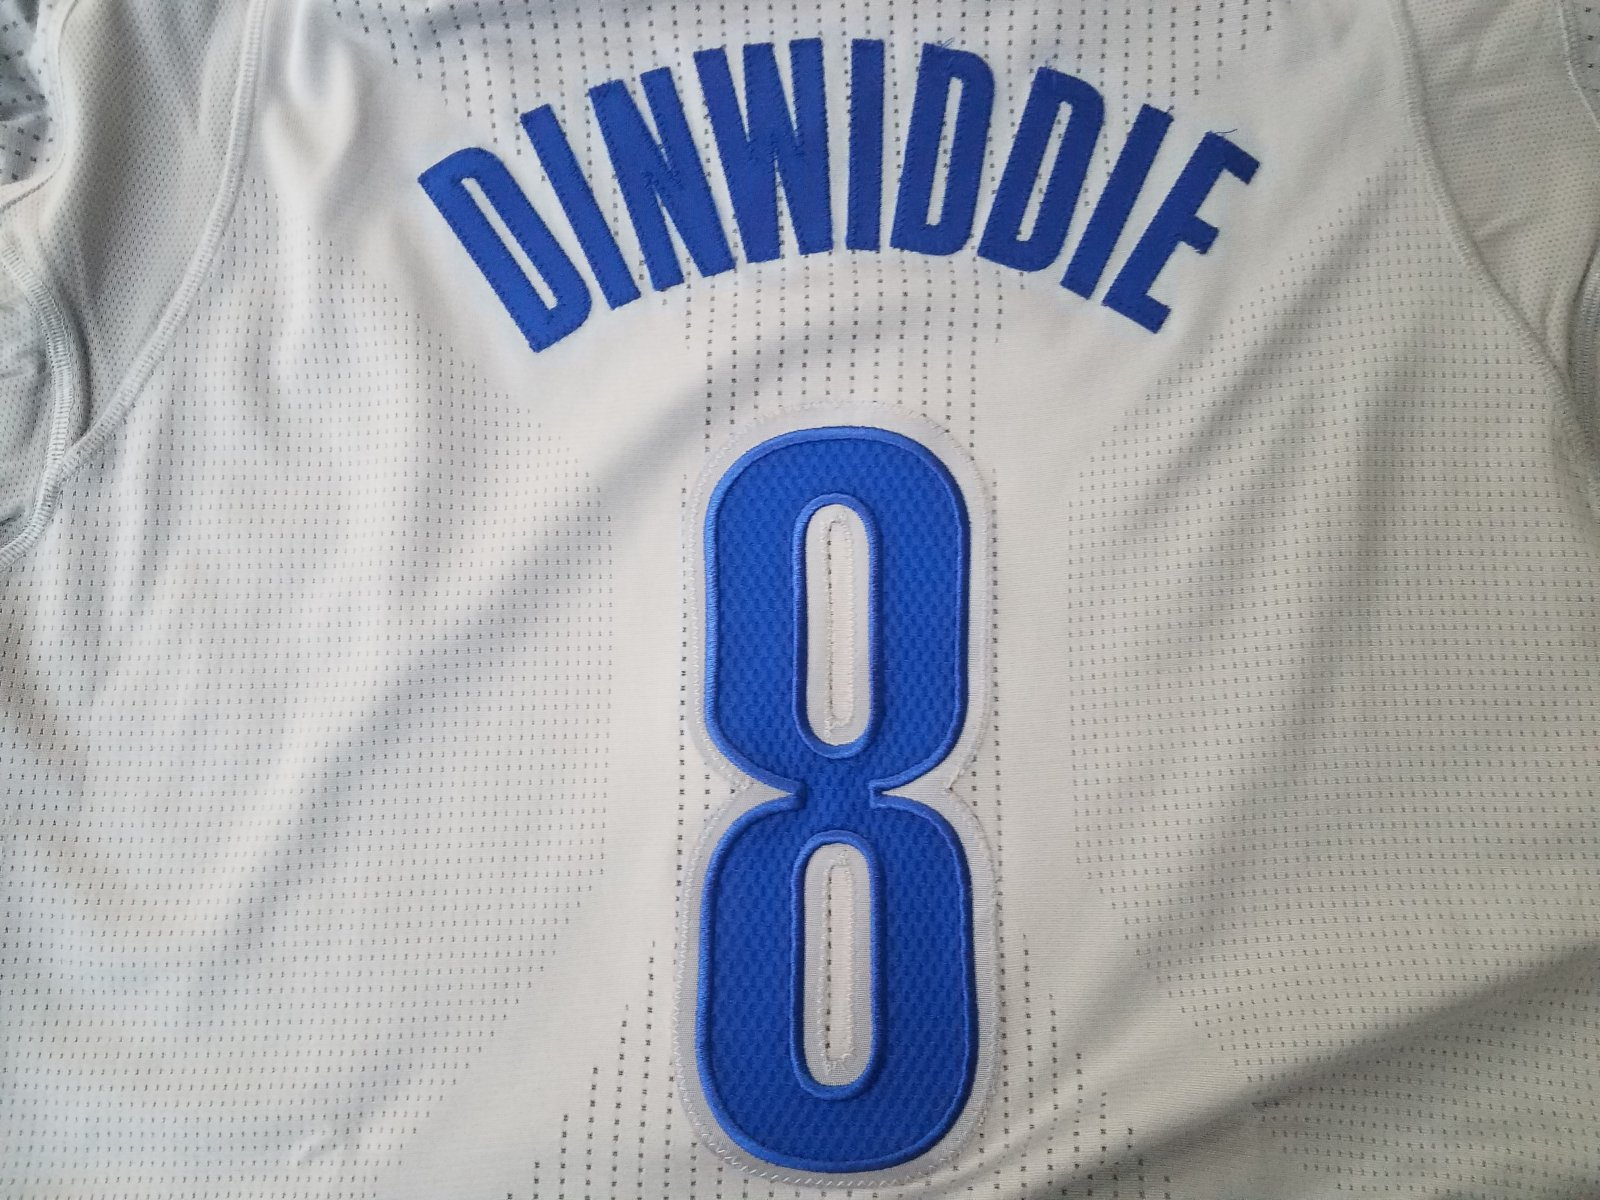 nets spencer dinwiddie jersey and shorts (8).jpg